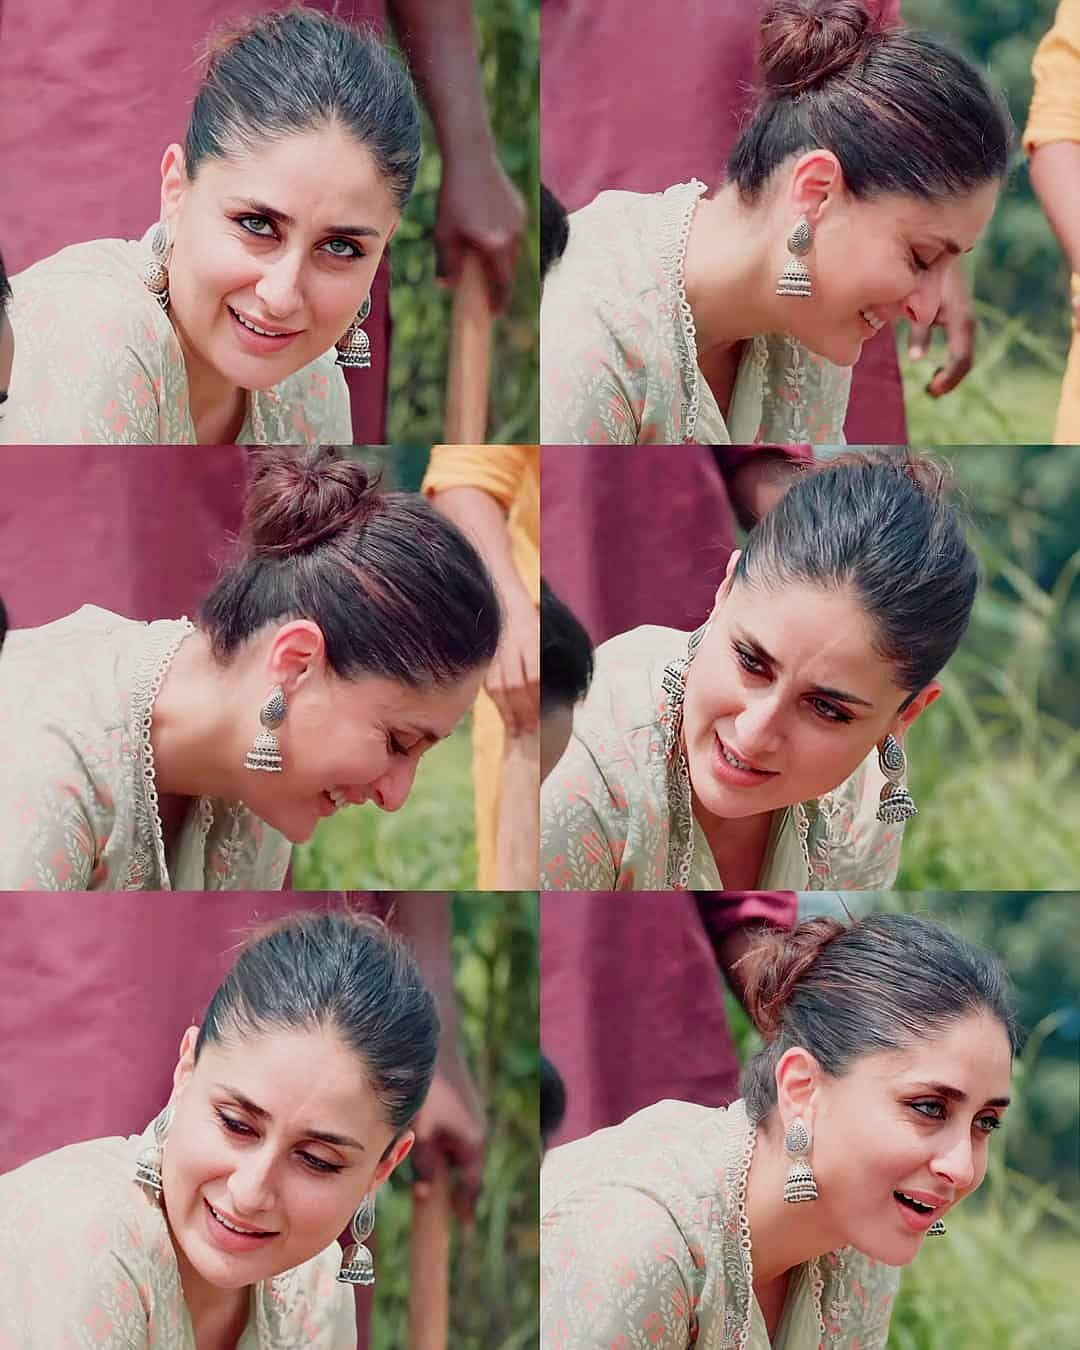 Kareena Kapoor Enjoyed A Day At The Farm And The Pictures Scream All The Fun She Had Hungryboo Kareena Kapoor Khan Kareena Kapoor Kareena Kapoor Pics